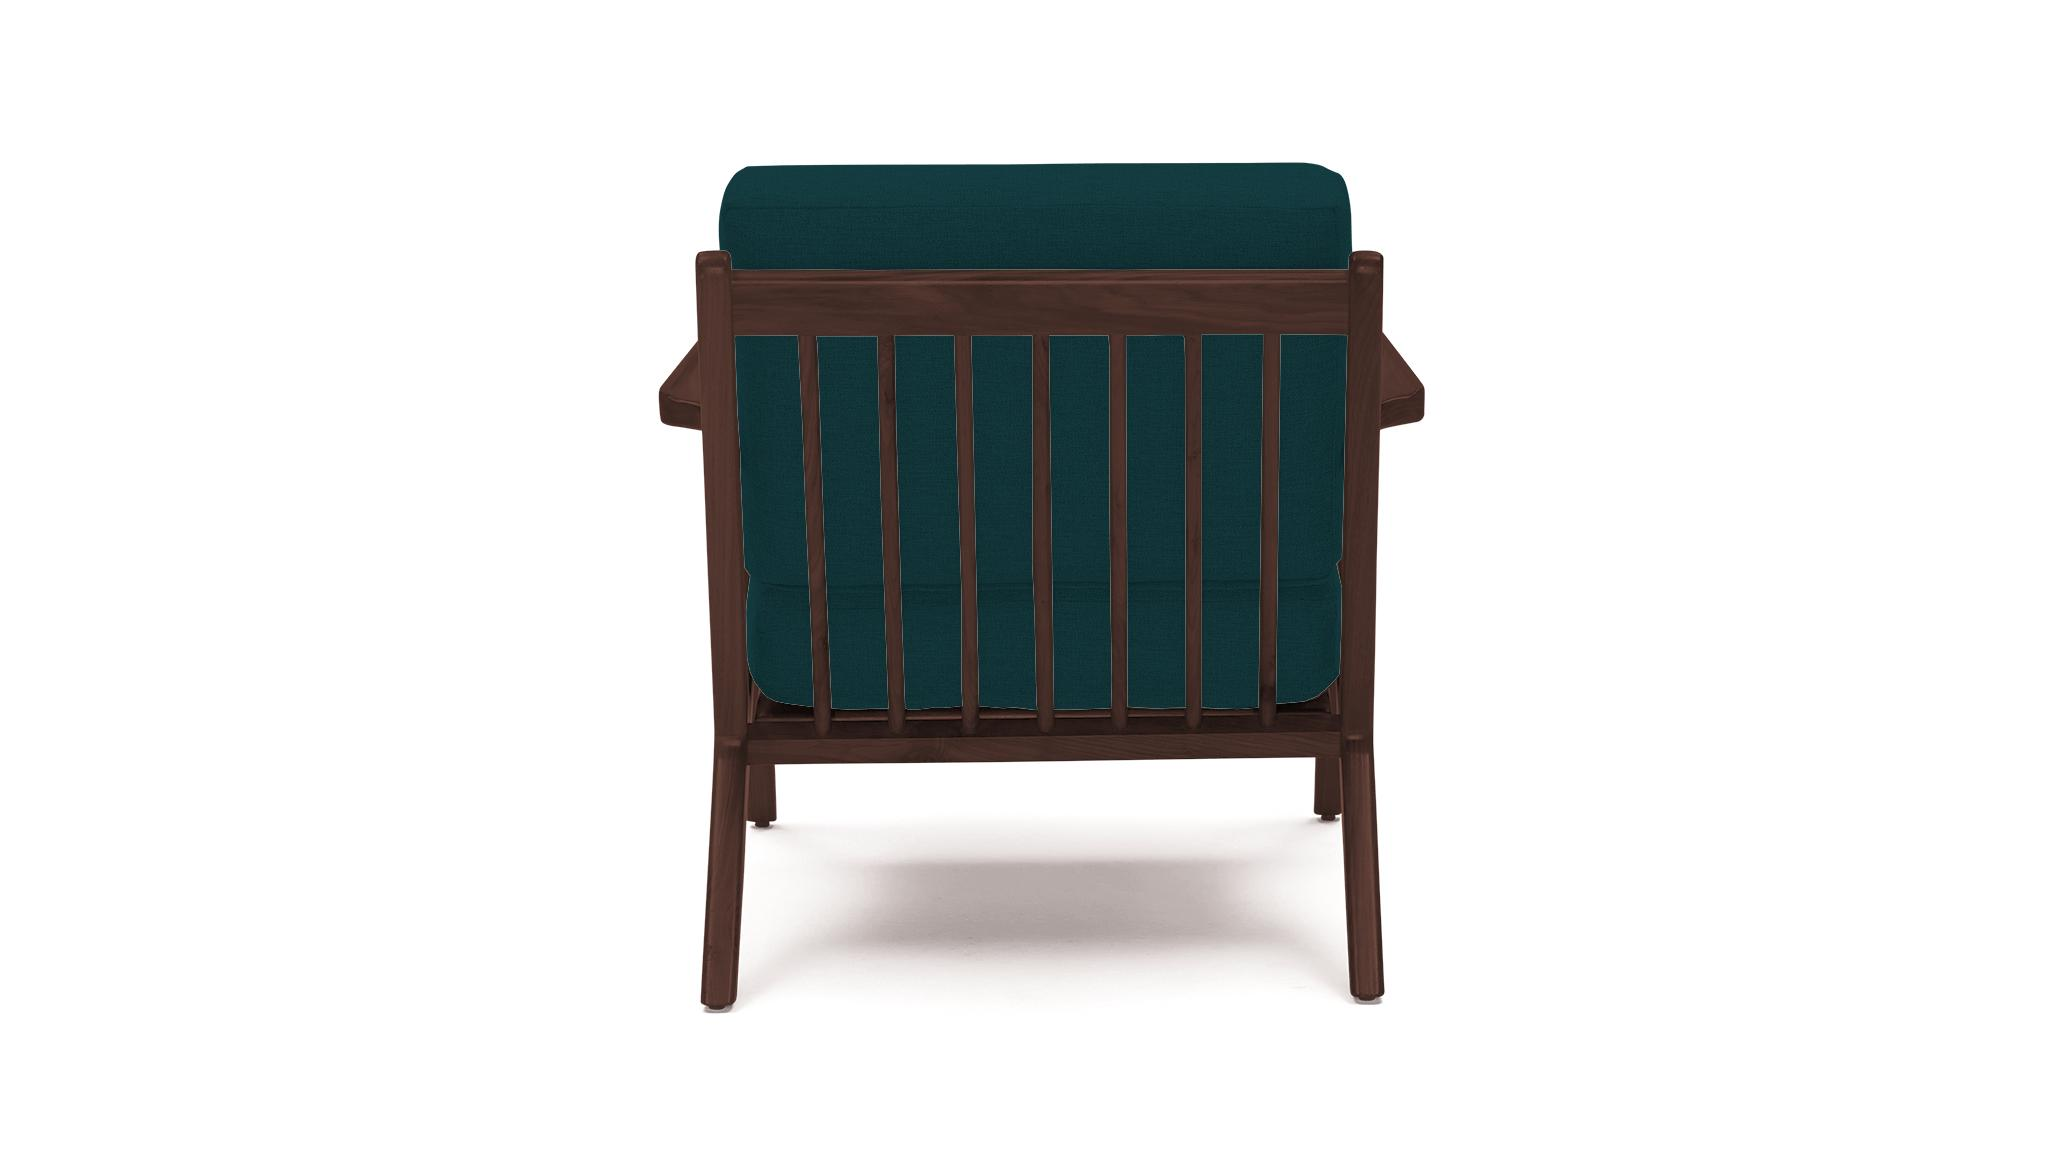 Blue Soto Mid Century Modern Concave Arm Chair - Royale Peacock  - Walnut